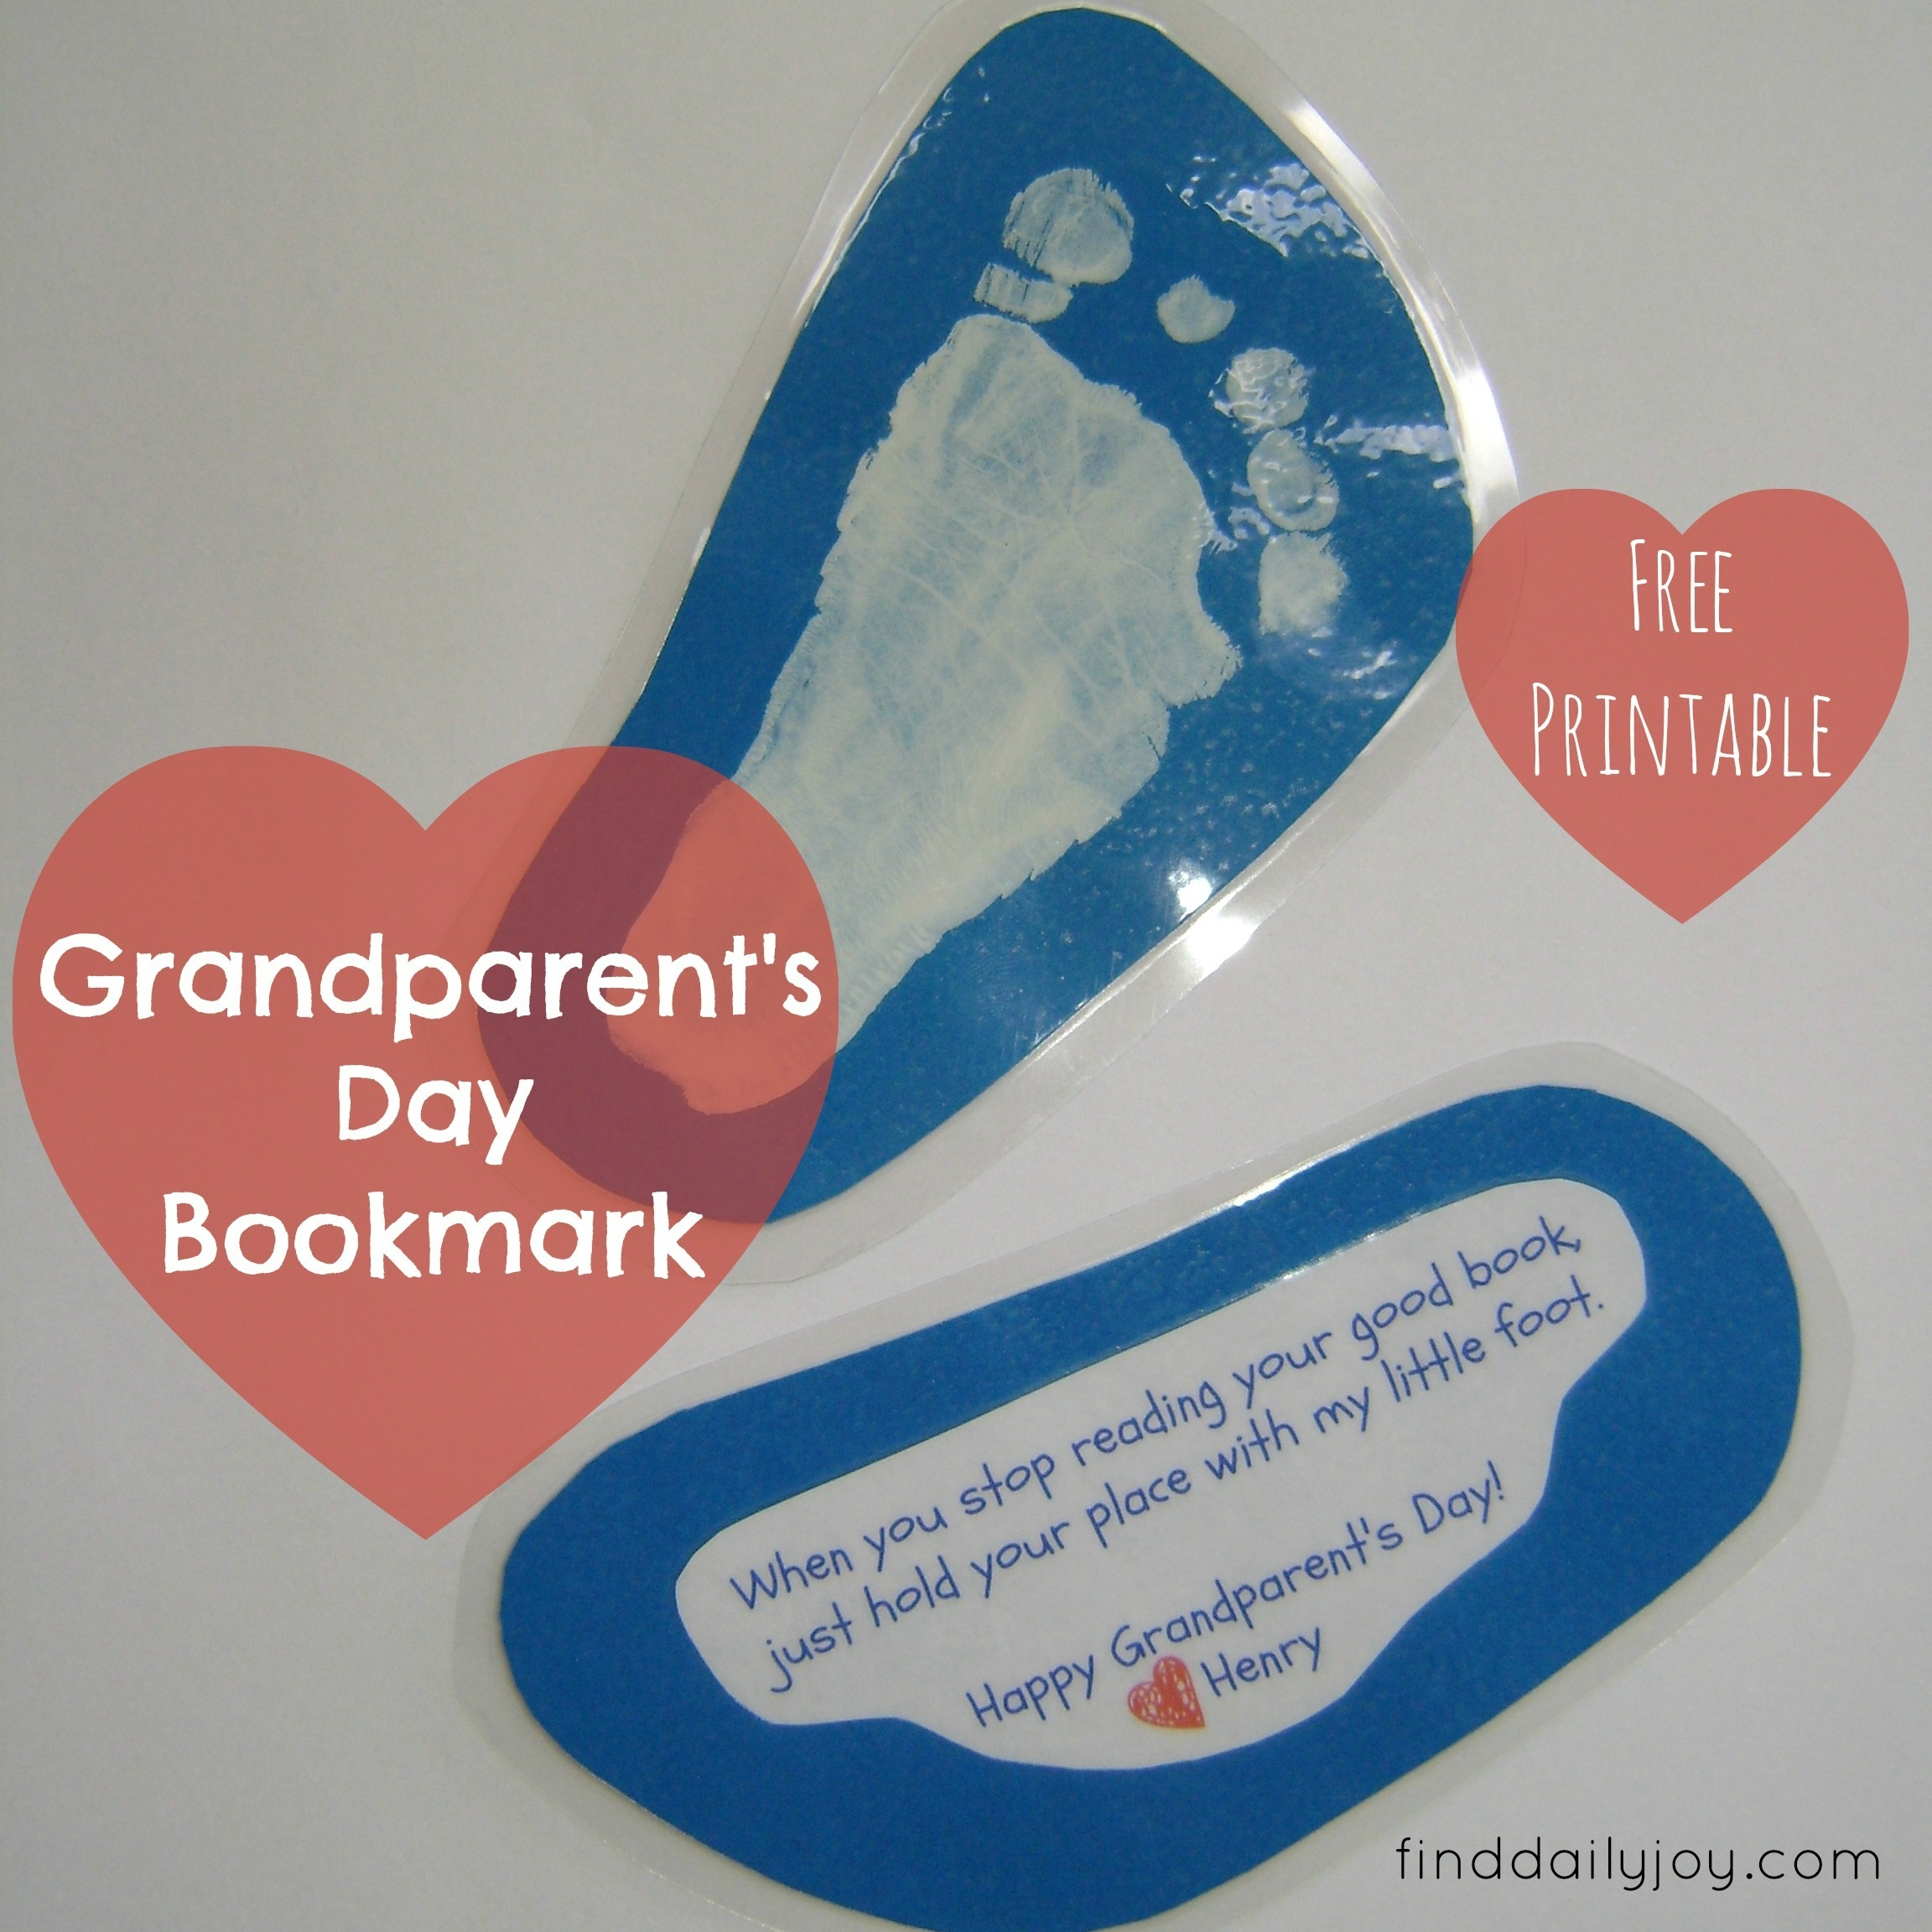 Grandparent's Day Bookmark {Free Printable} | Find Daily Joy - Free Printable Baby Bookmarks